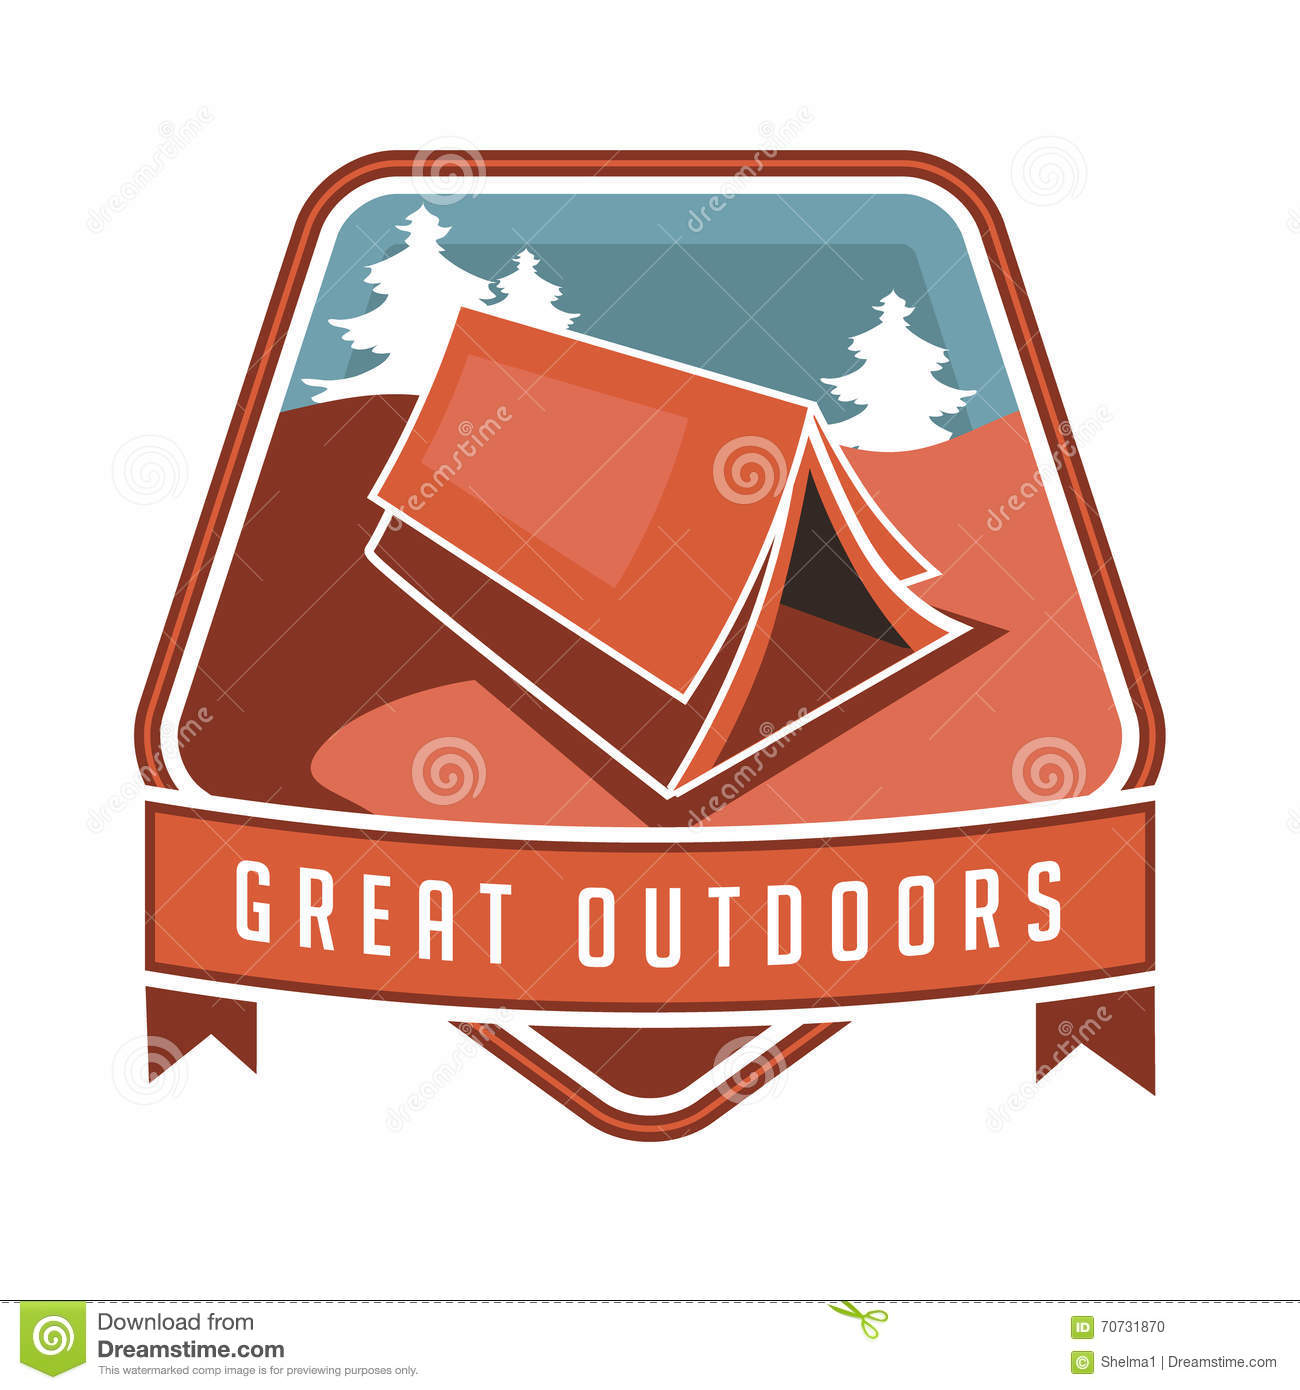 Poster design eps - Vintage Camping Backpacking And Hiking Poster Design Stock Vector